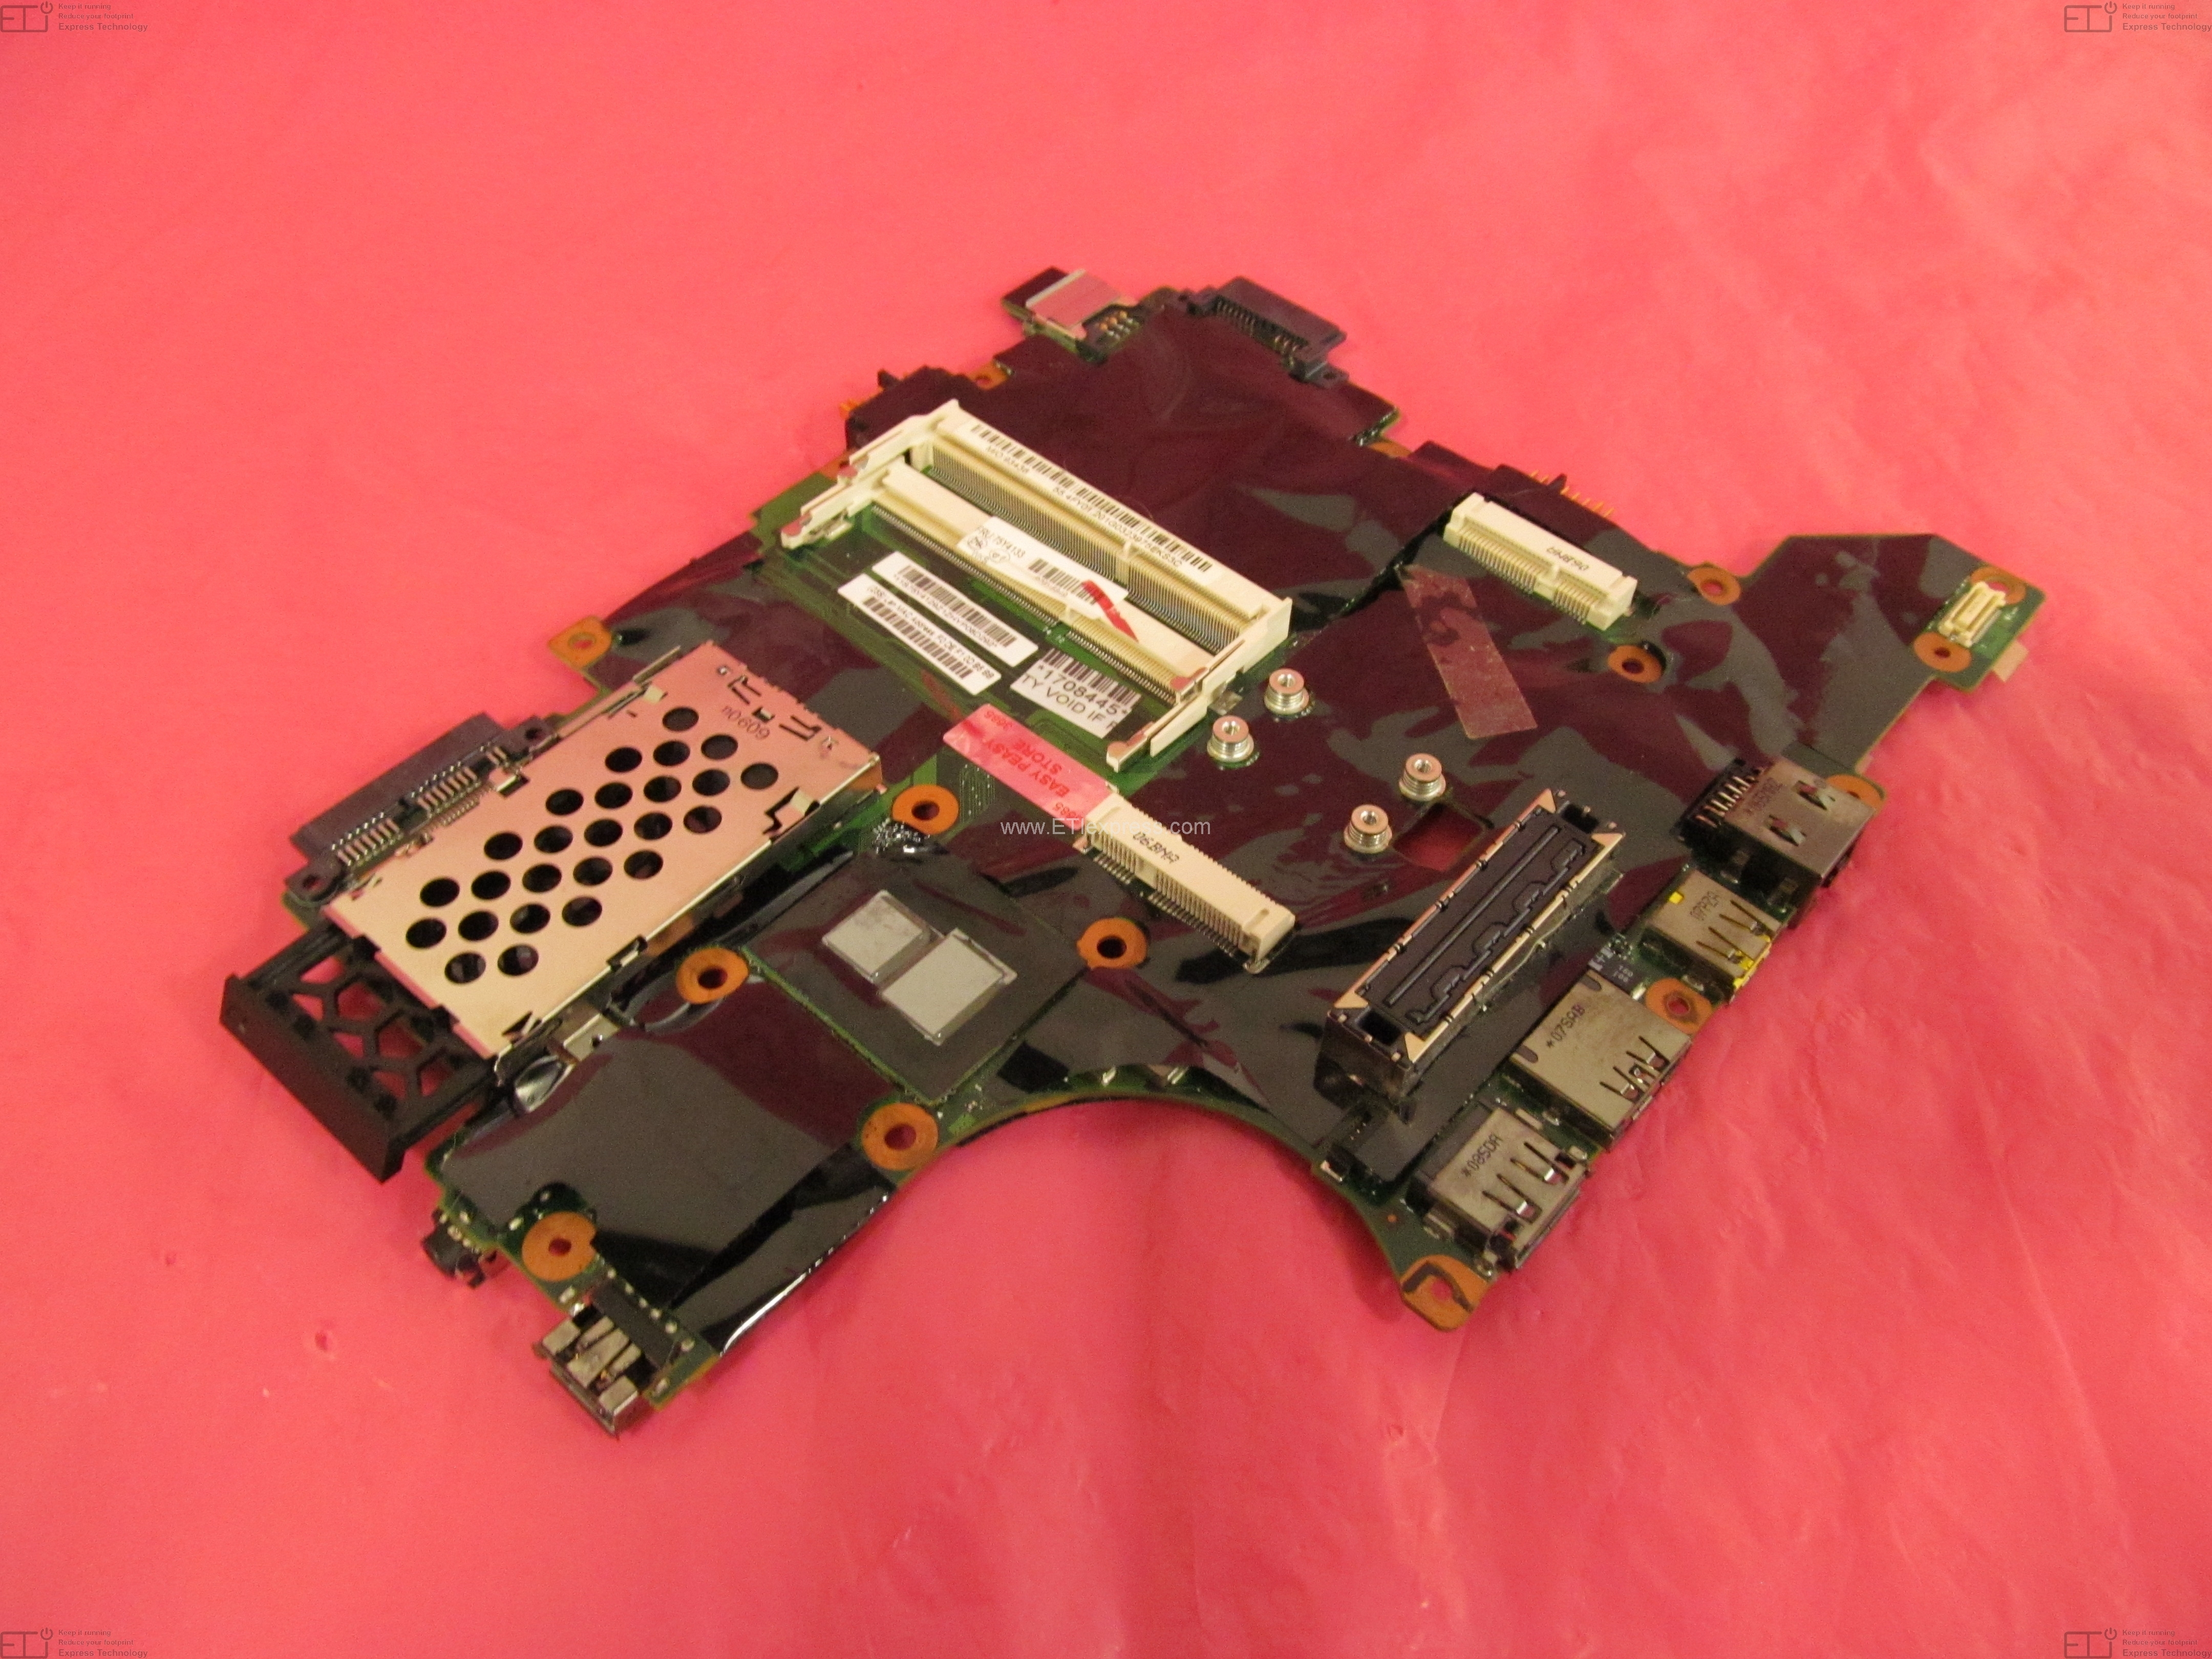 Refurbished Motherboards Dell Motherboard Layout Xps M1210 75y4133 Thinkpad T410s